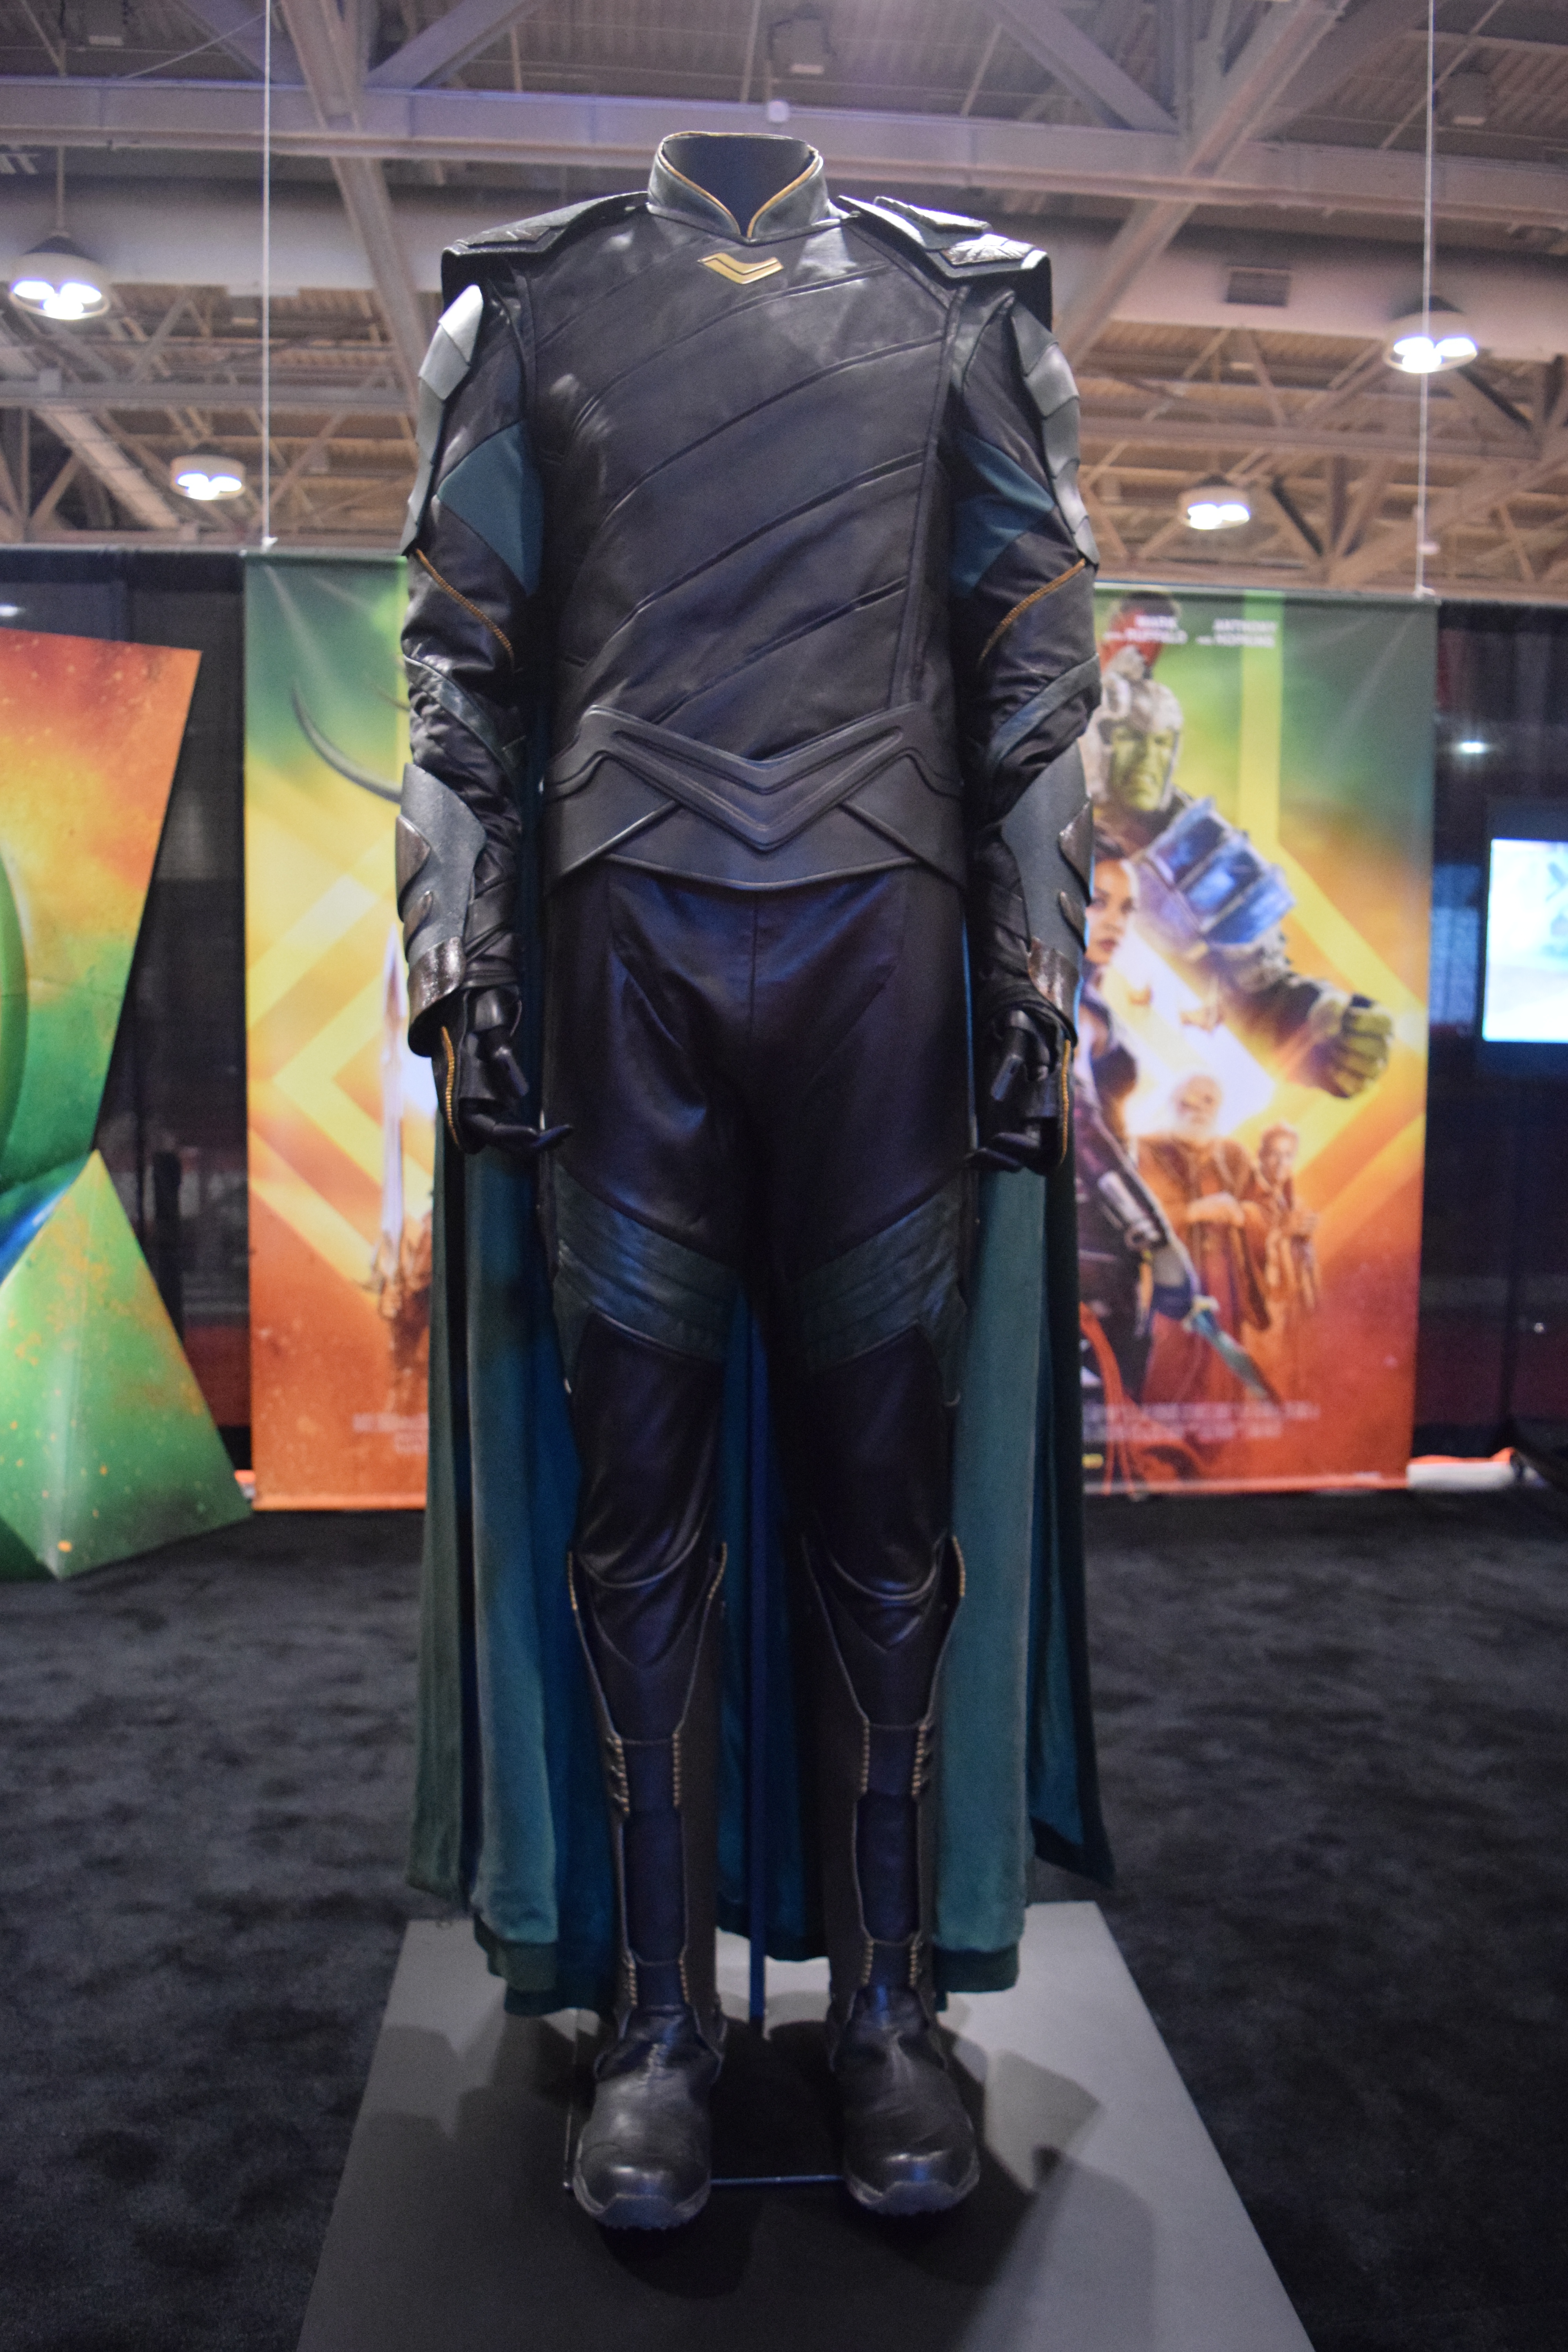 Thor: Ragnarok at Fan Expo 2017 | One Movie, Our Views